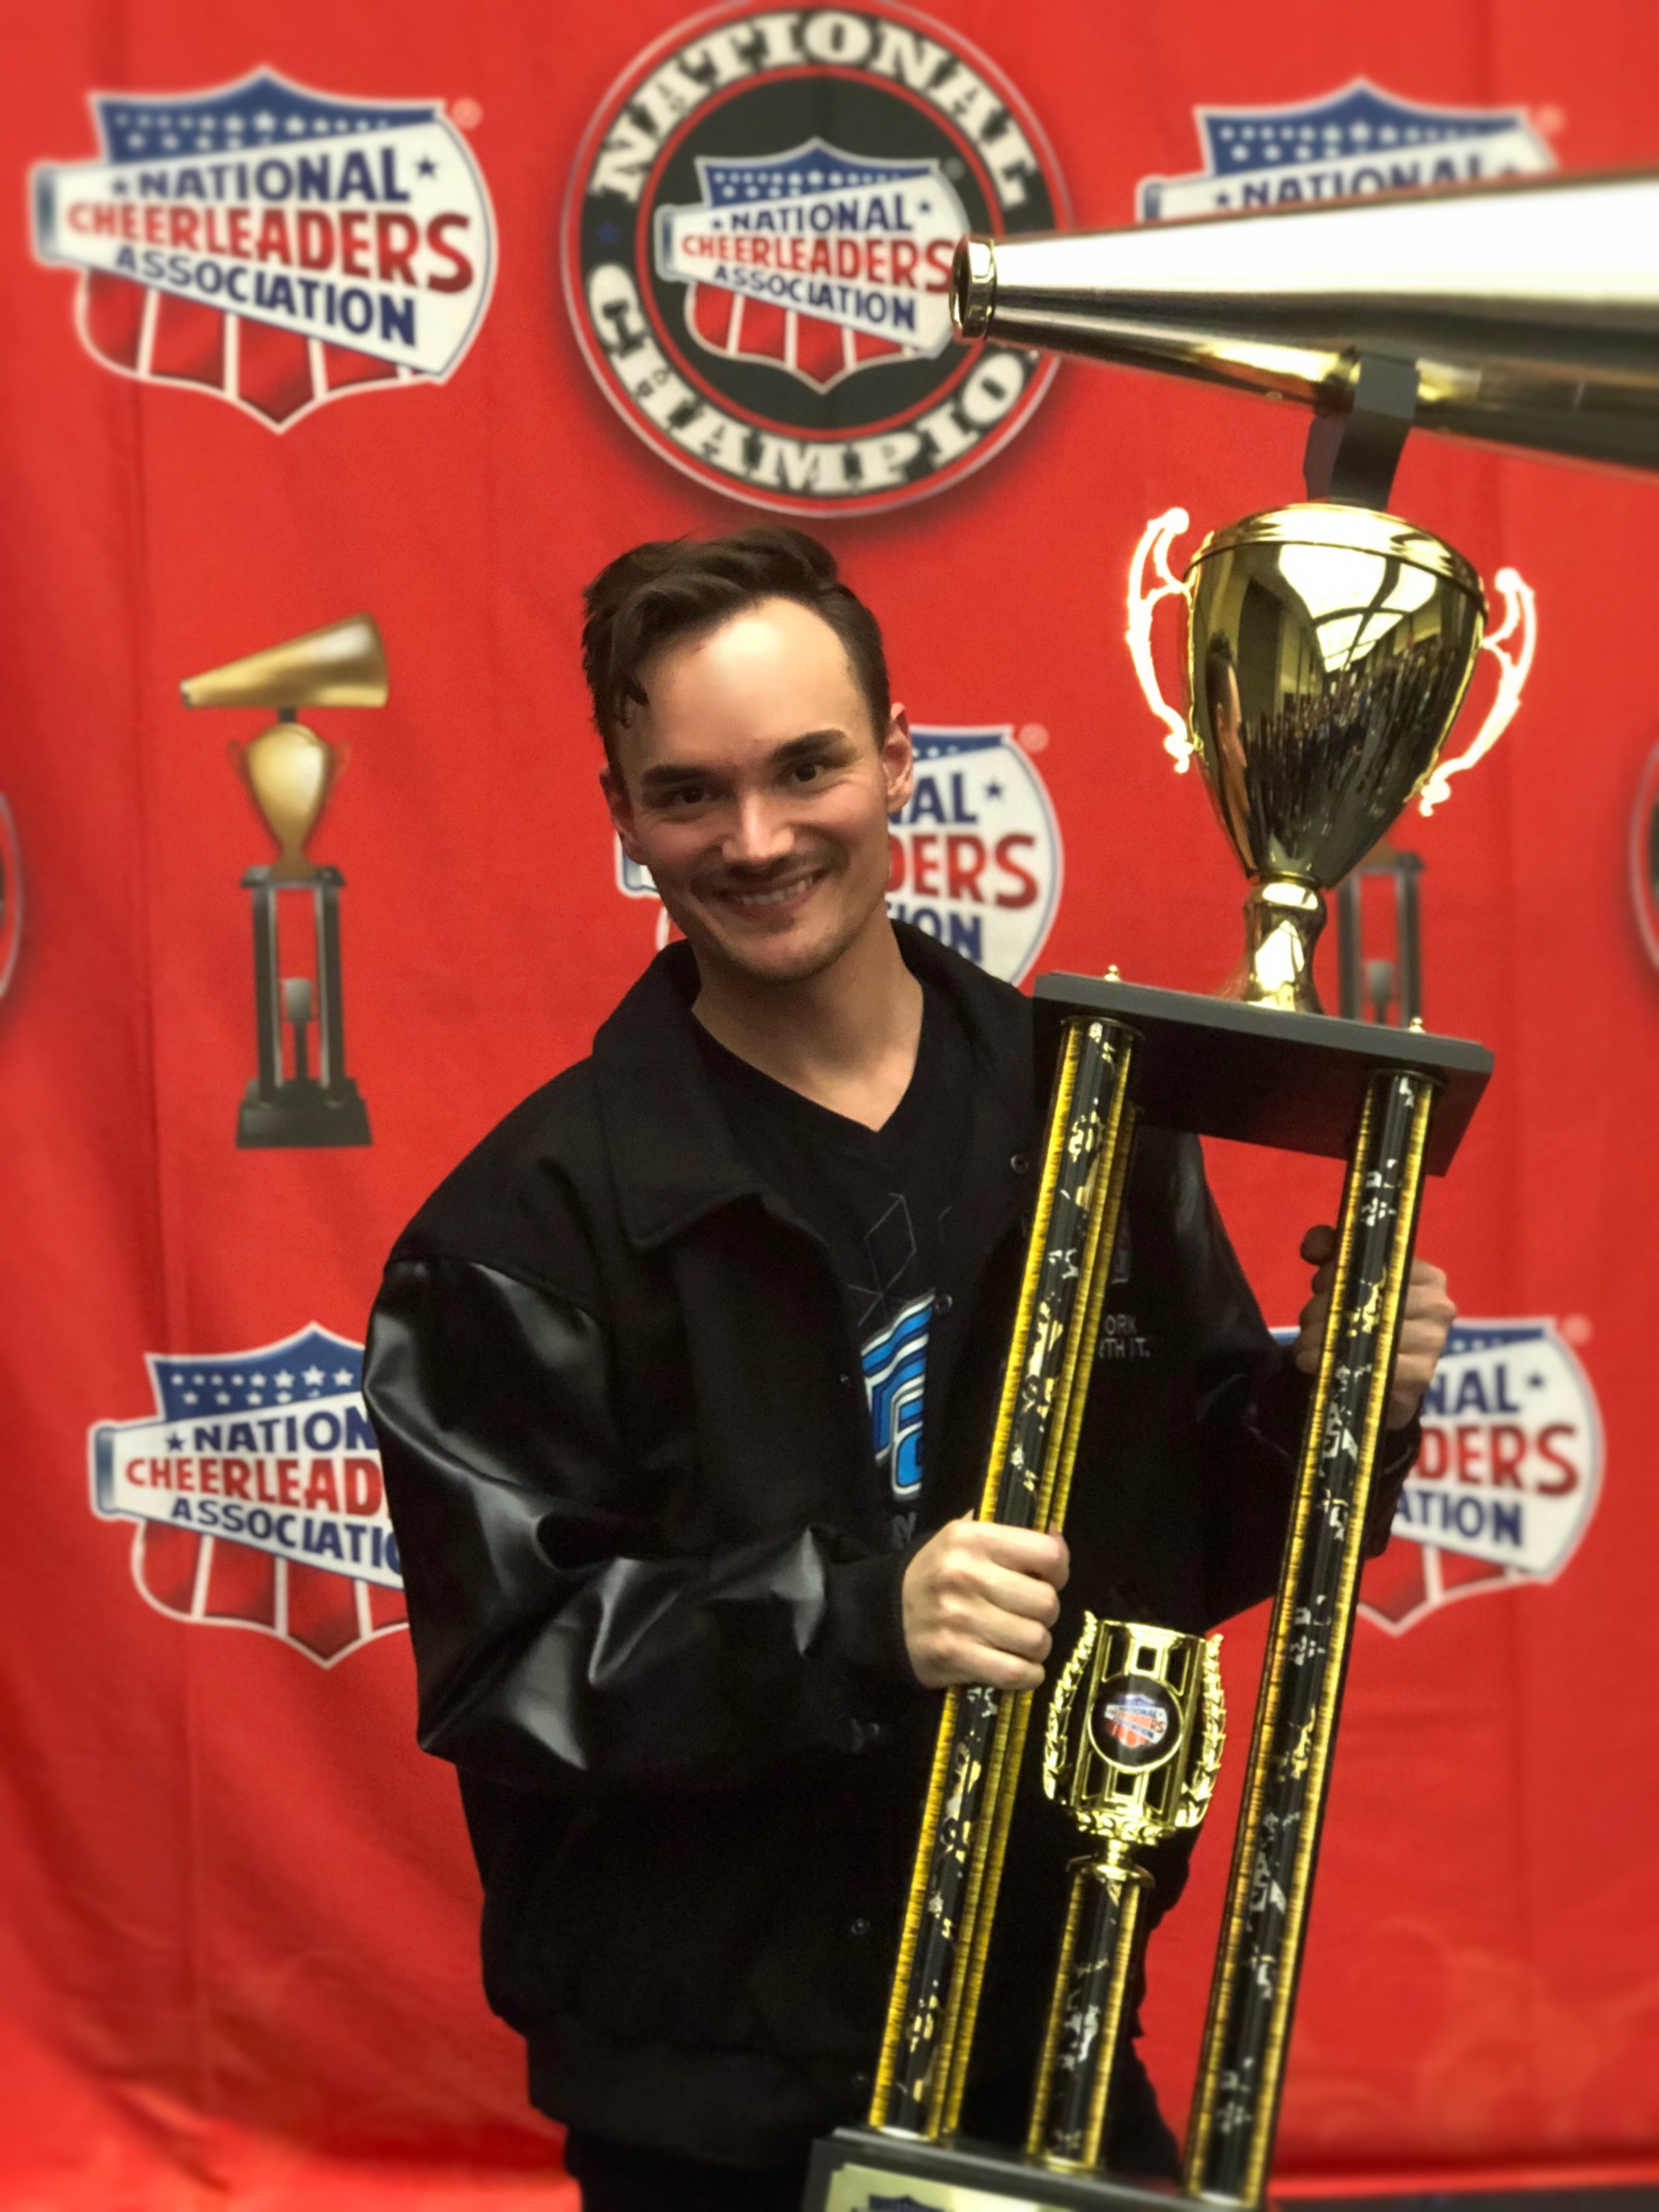 Dustin NCA Trophy.JPG